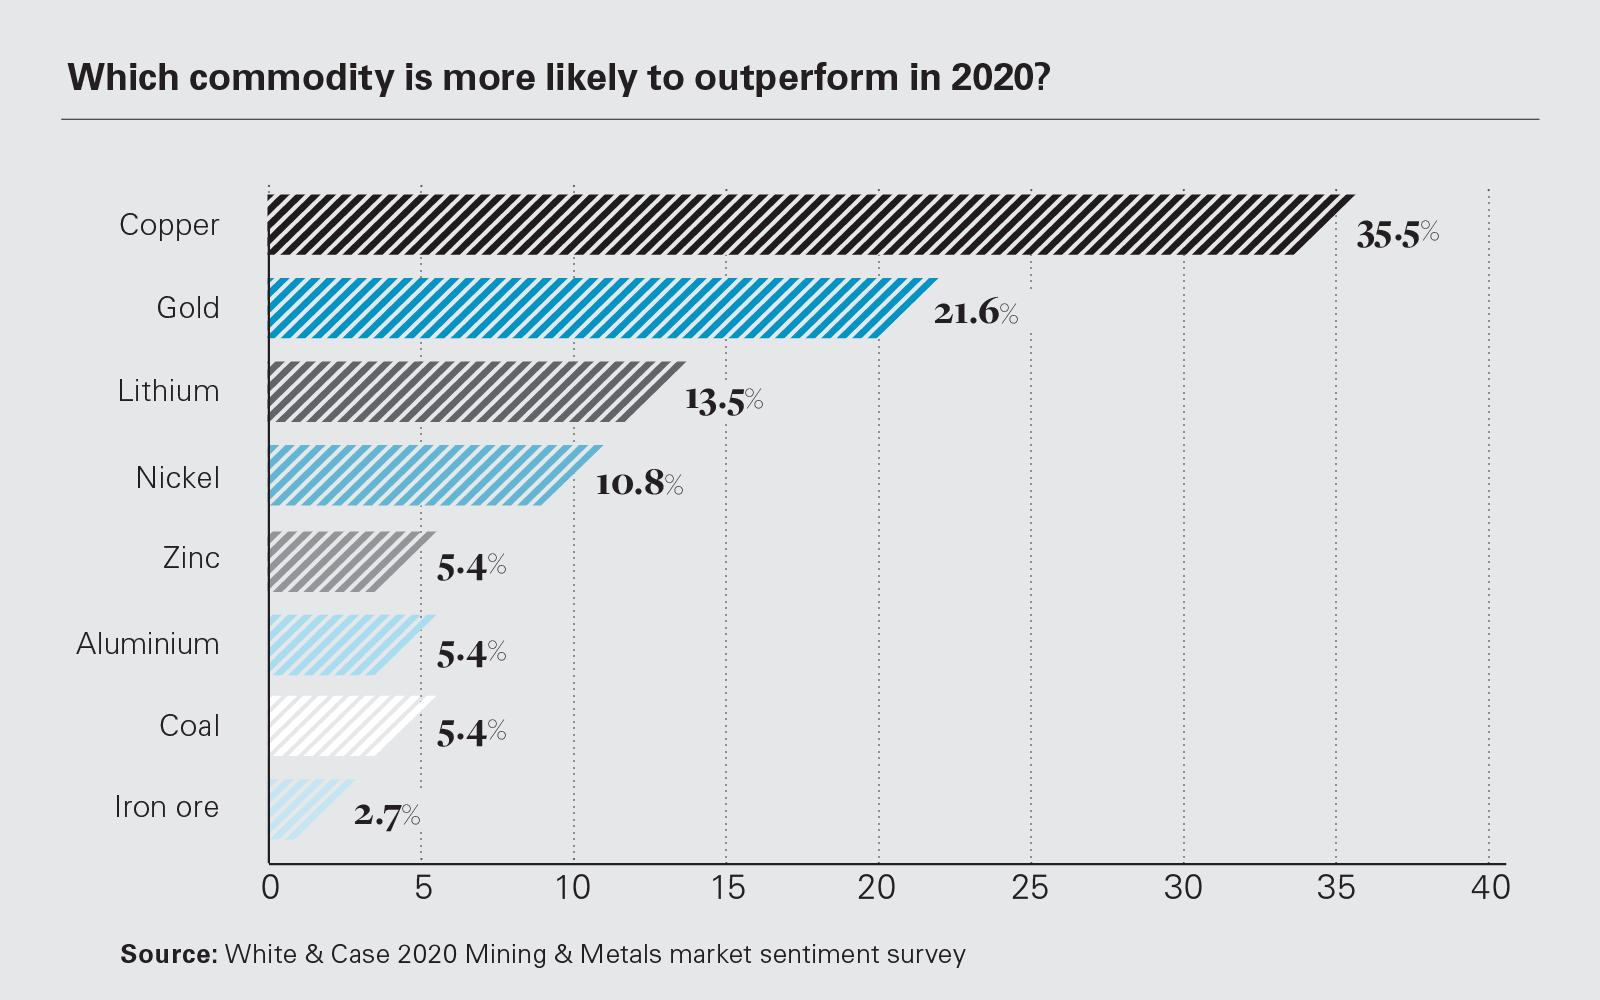 Which commodity is more likely to outperform in 2020?